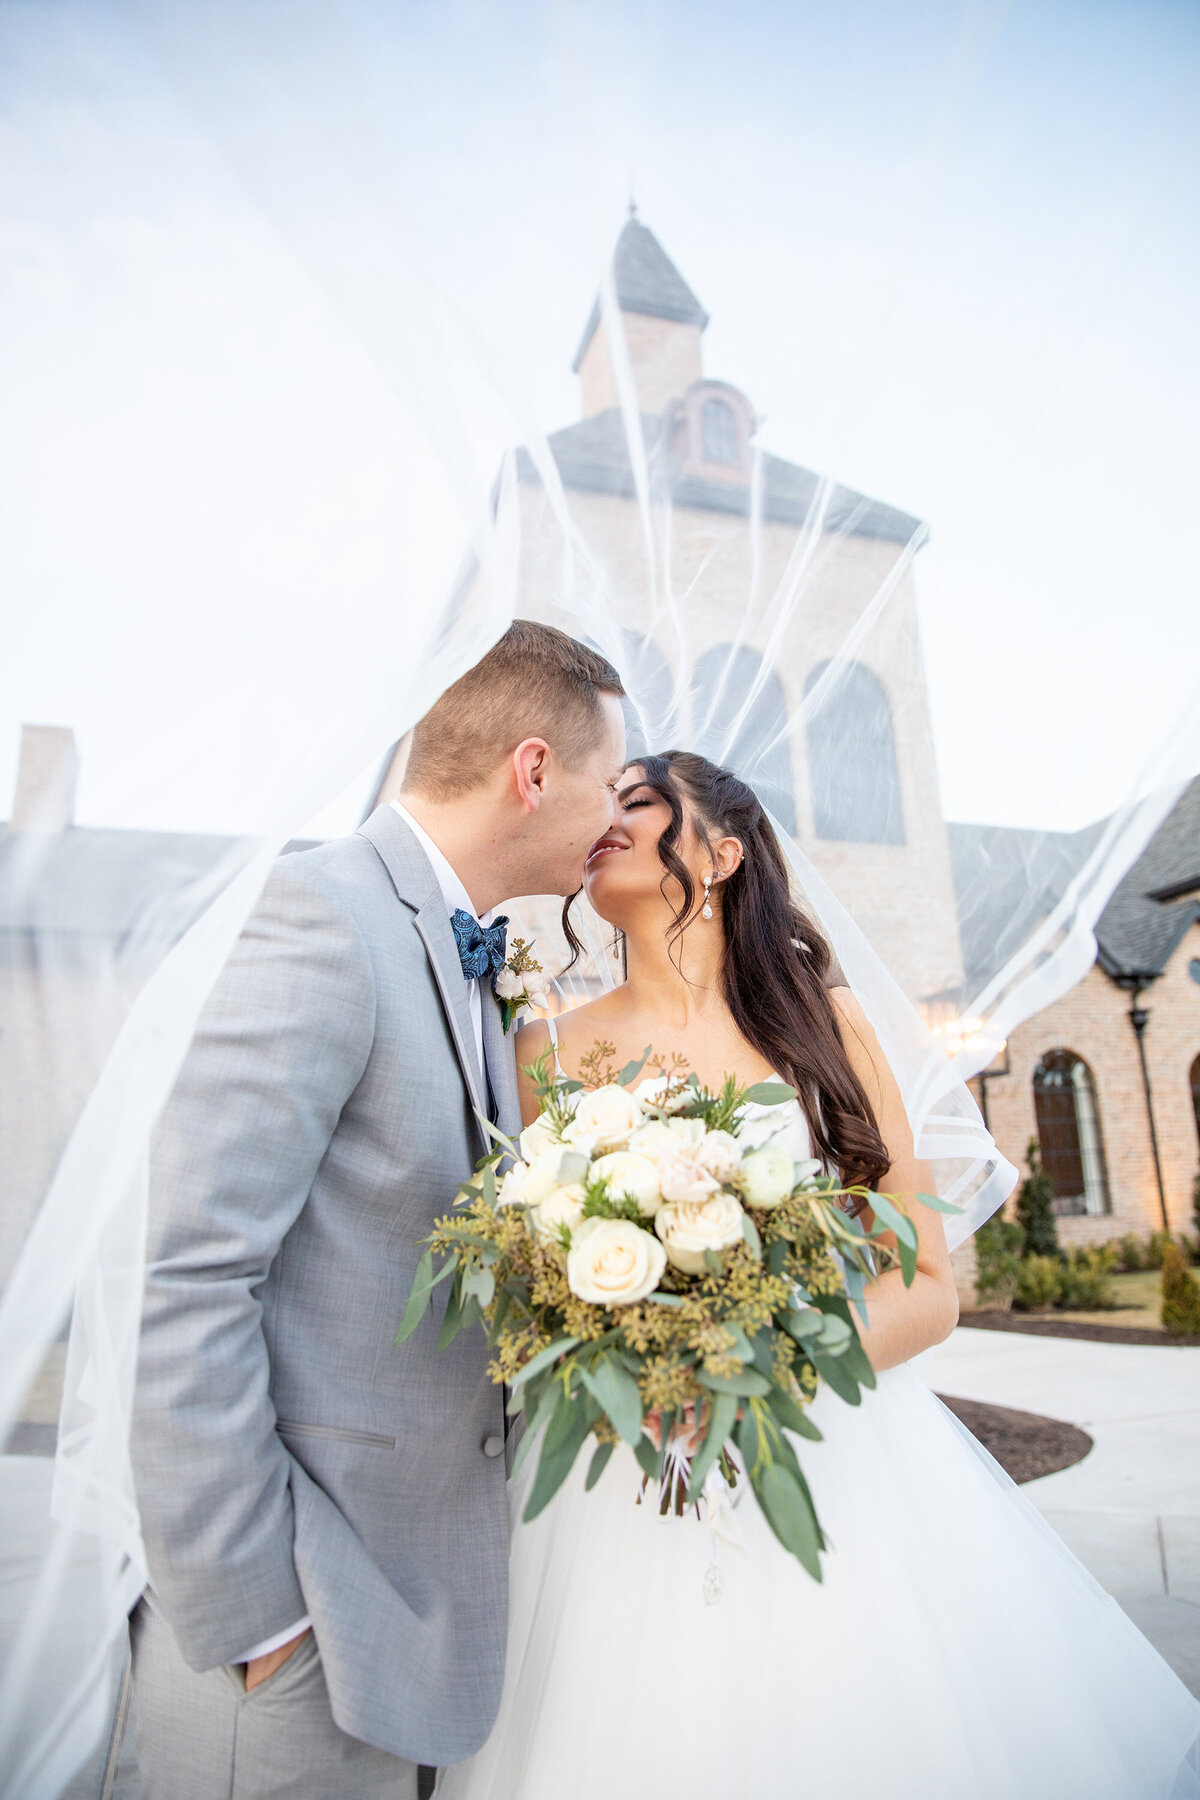 Bride and Groom Kiss Under Her Veil in Front of Iron Manor